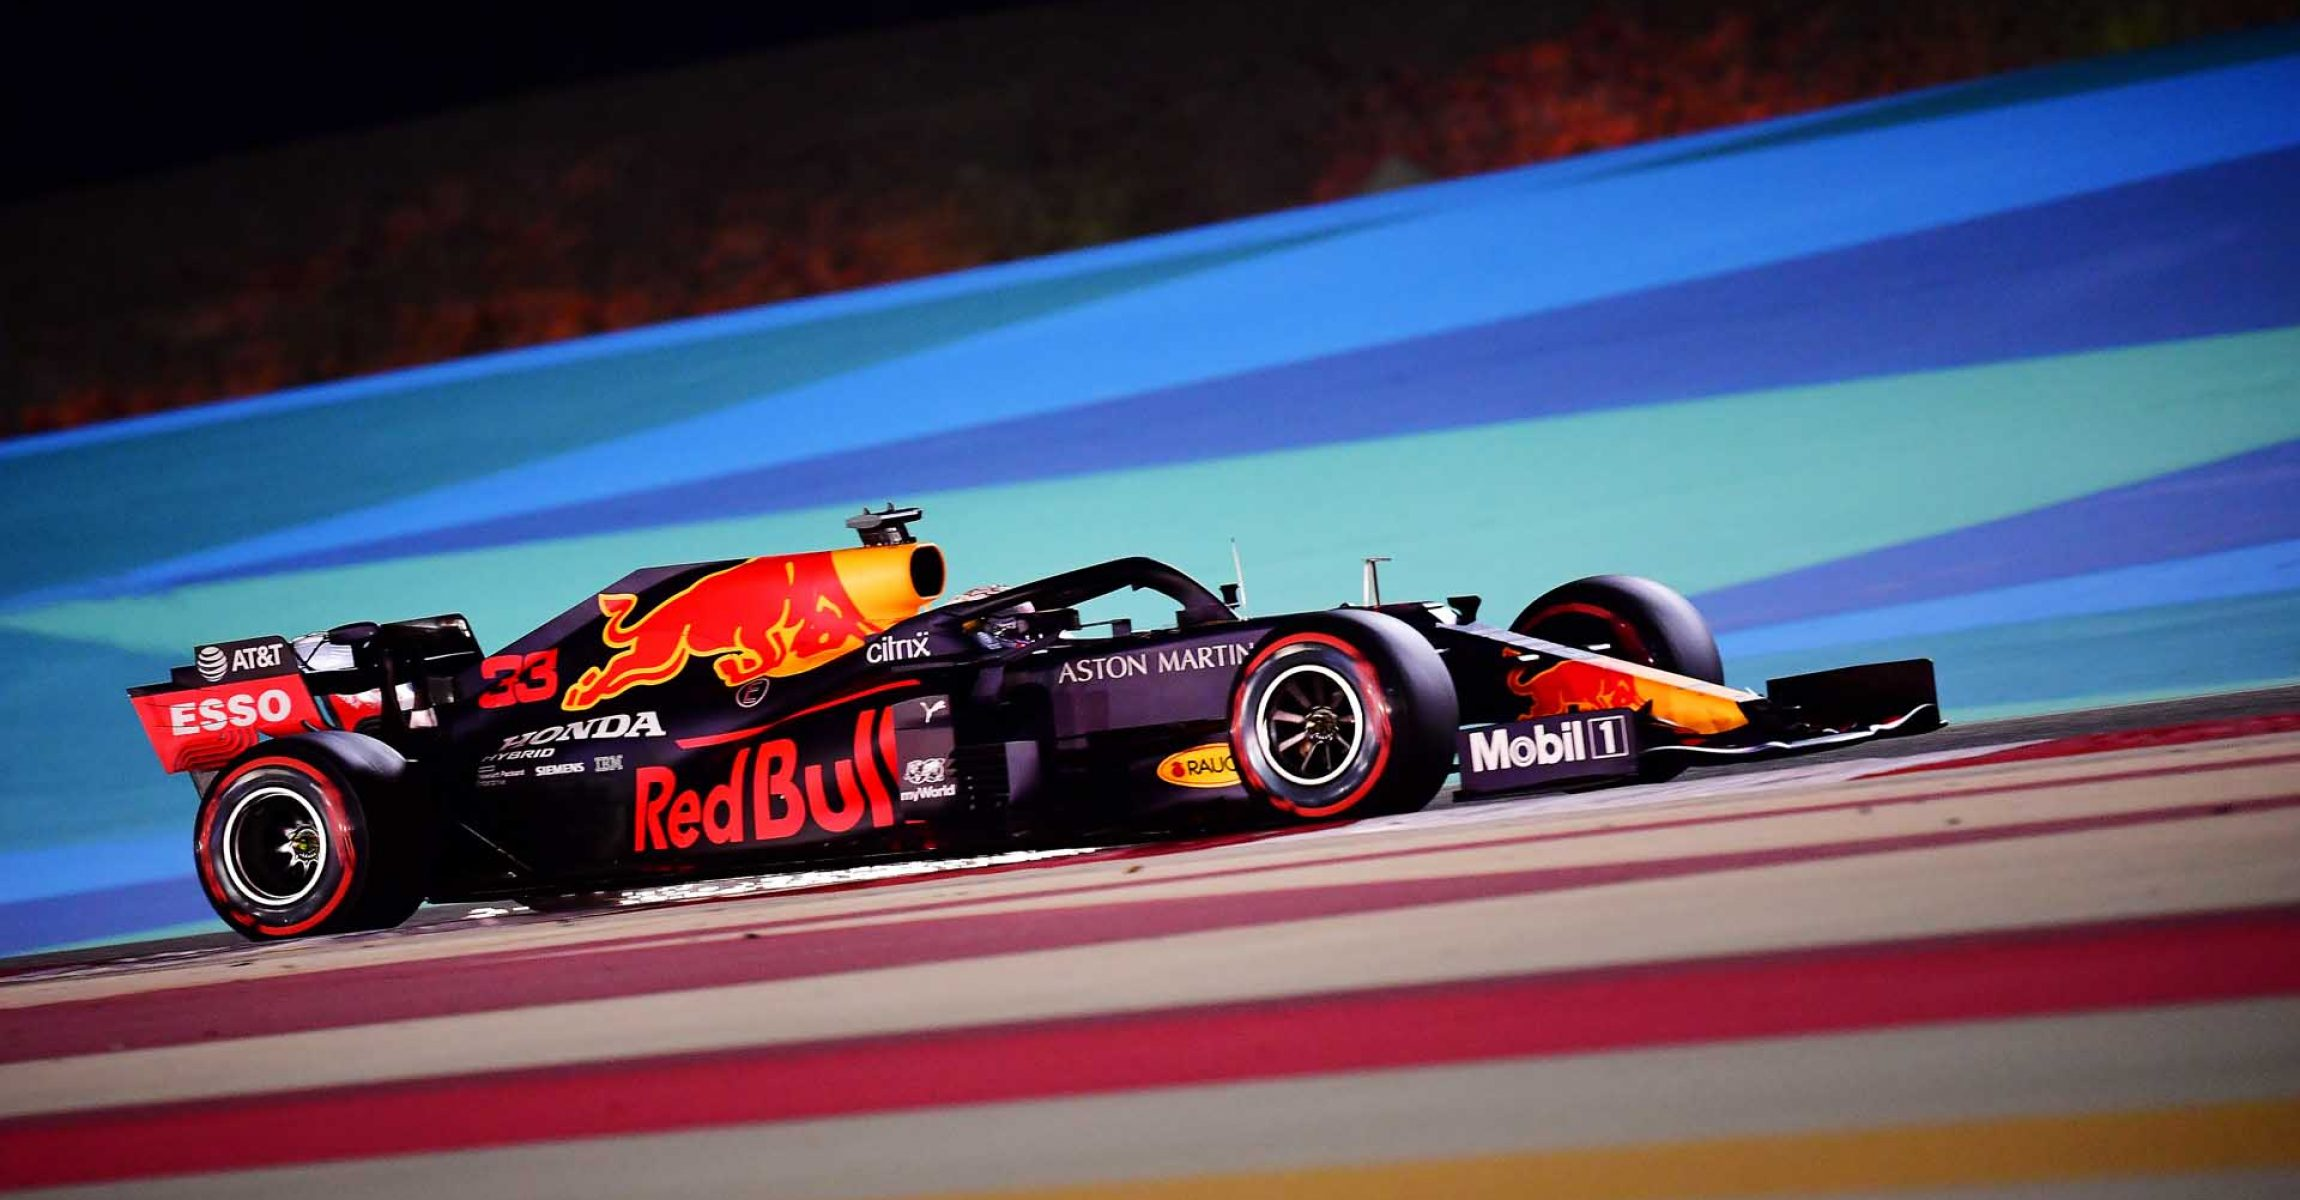 BAHRAIN, BAHRAIN - NOVEMBER 28: Max Verstappen of the Netherlands driving the (33) Aston Martin Red Bull Racing RB16 on track during qualifying ahead of the F1 Grand Prix of Bahrain at Bahrain International Circuit on November 28, 2020 in Bahrain, Bahrain. (Photo by Giuseppe Cacace - Pool/Getty Images)